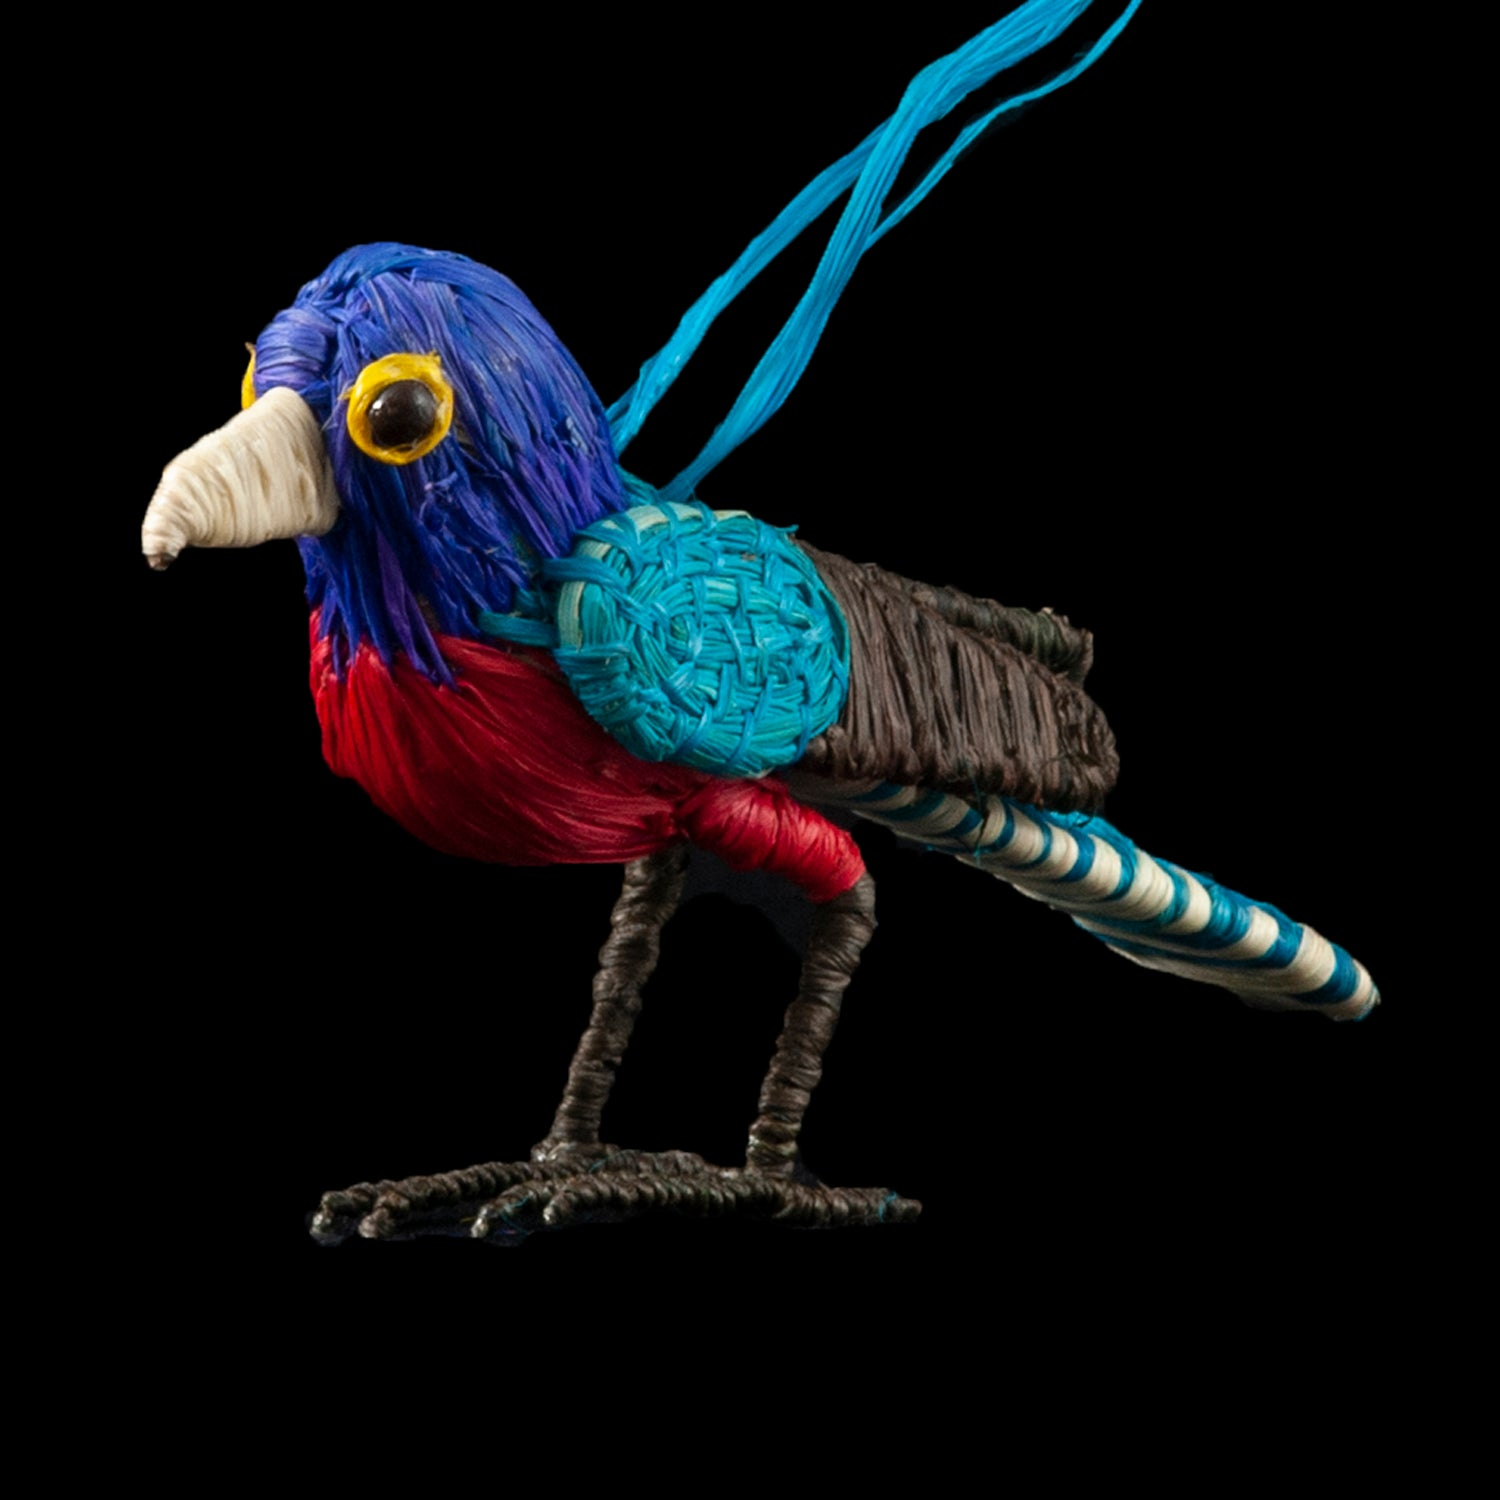 BLUE-CROWNED TROGON BIRD - FAIR-TRADE CHRISTMAS TREE ORNAMENT - WOVEN BY PERUVIAN AMAZON ARTISAN